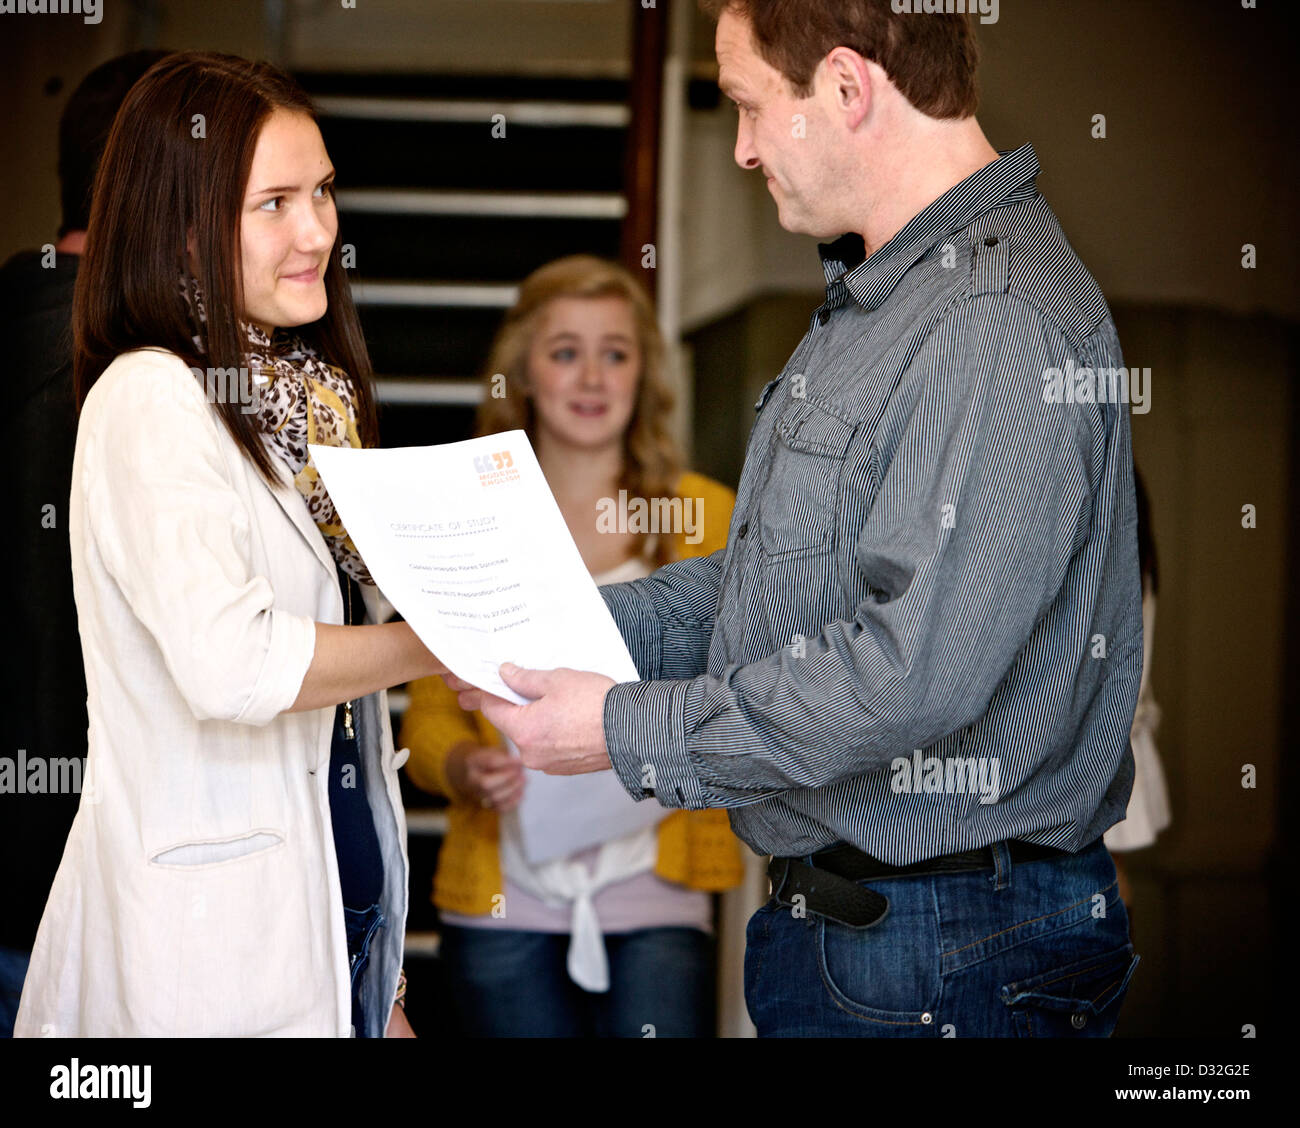 A young person being presented with their college degree having graduated - Stock Image